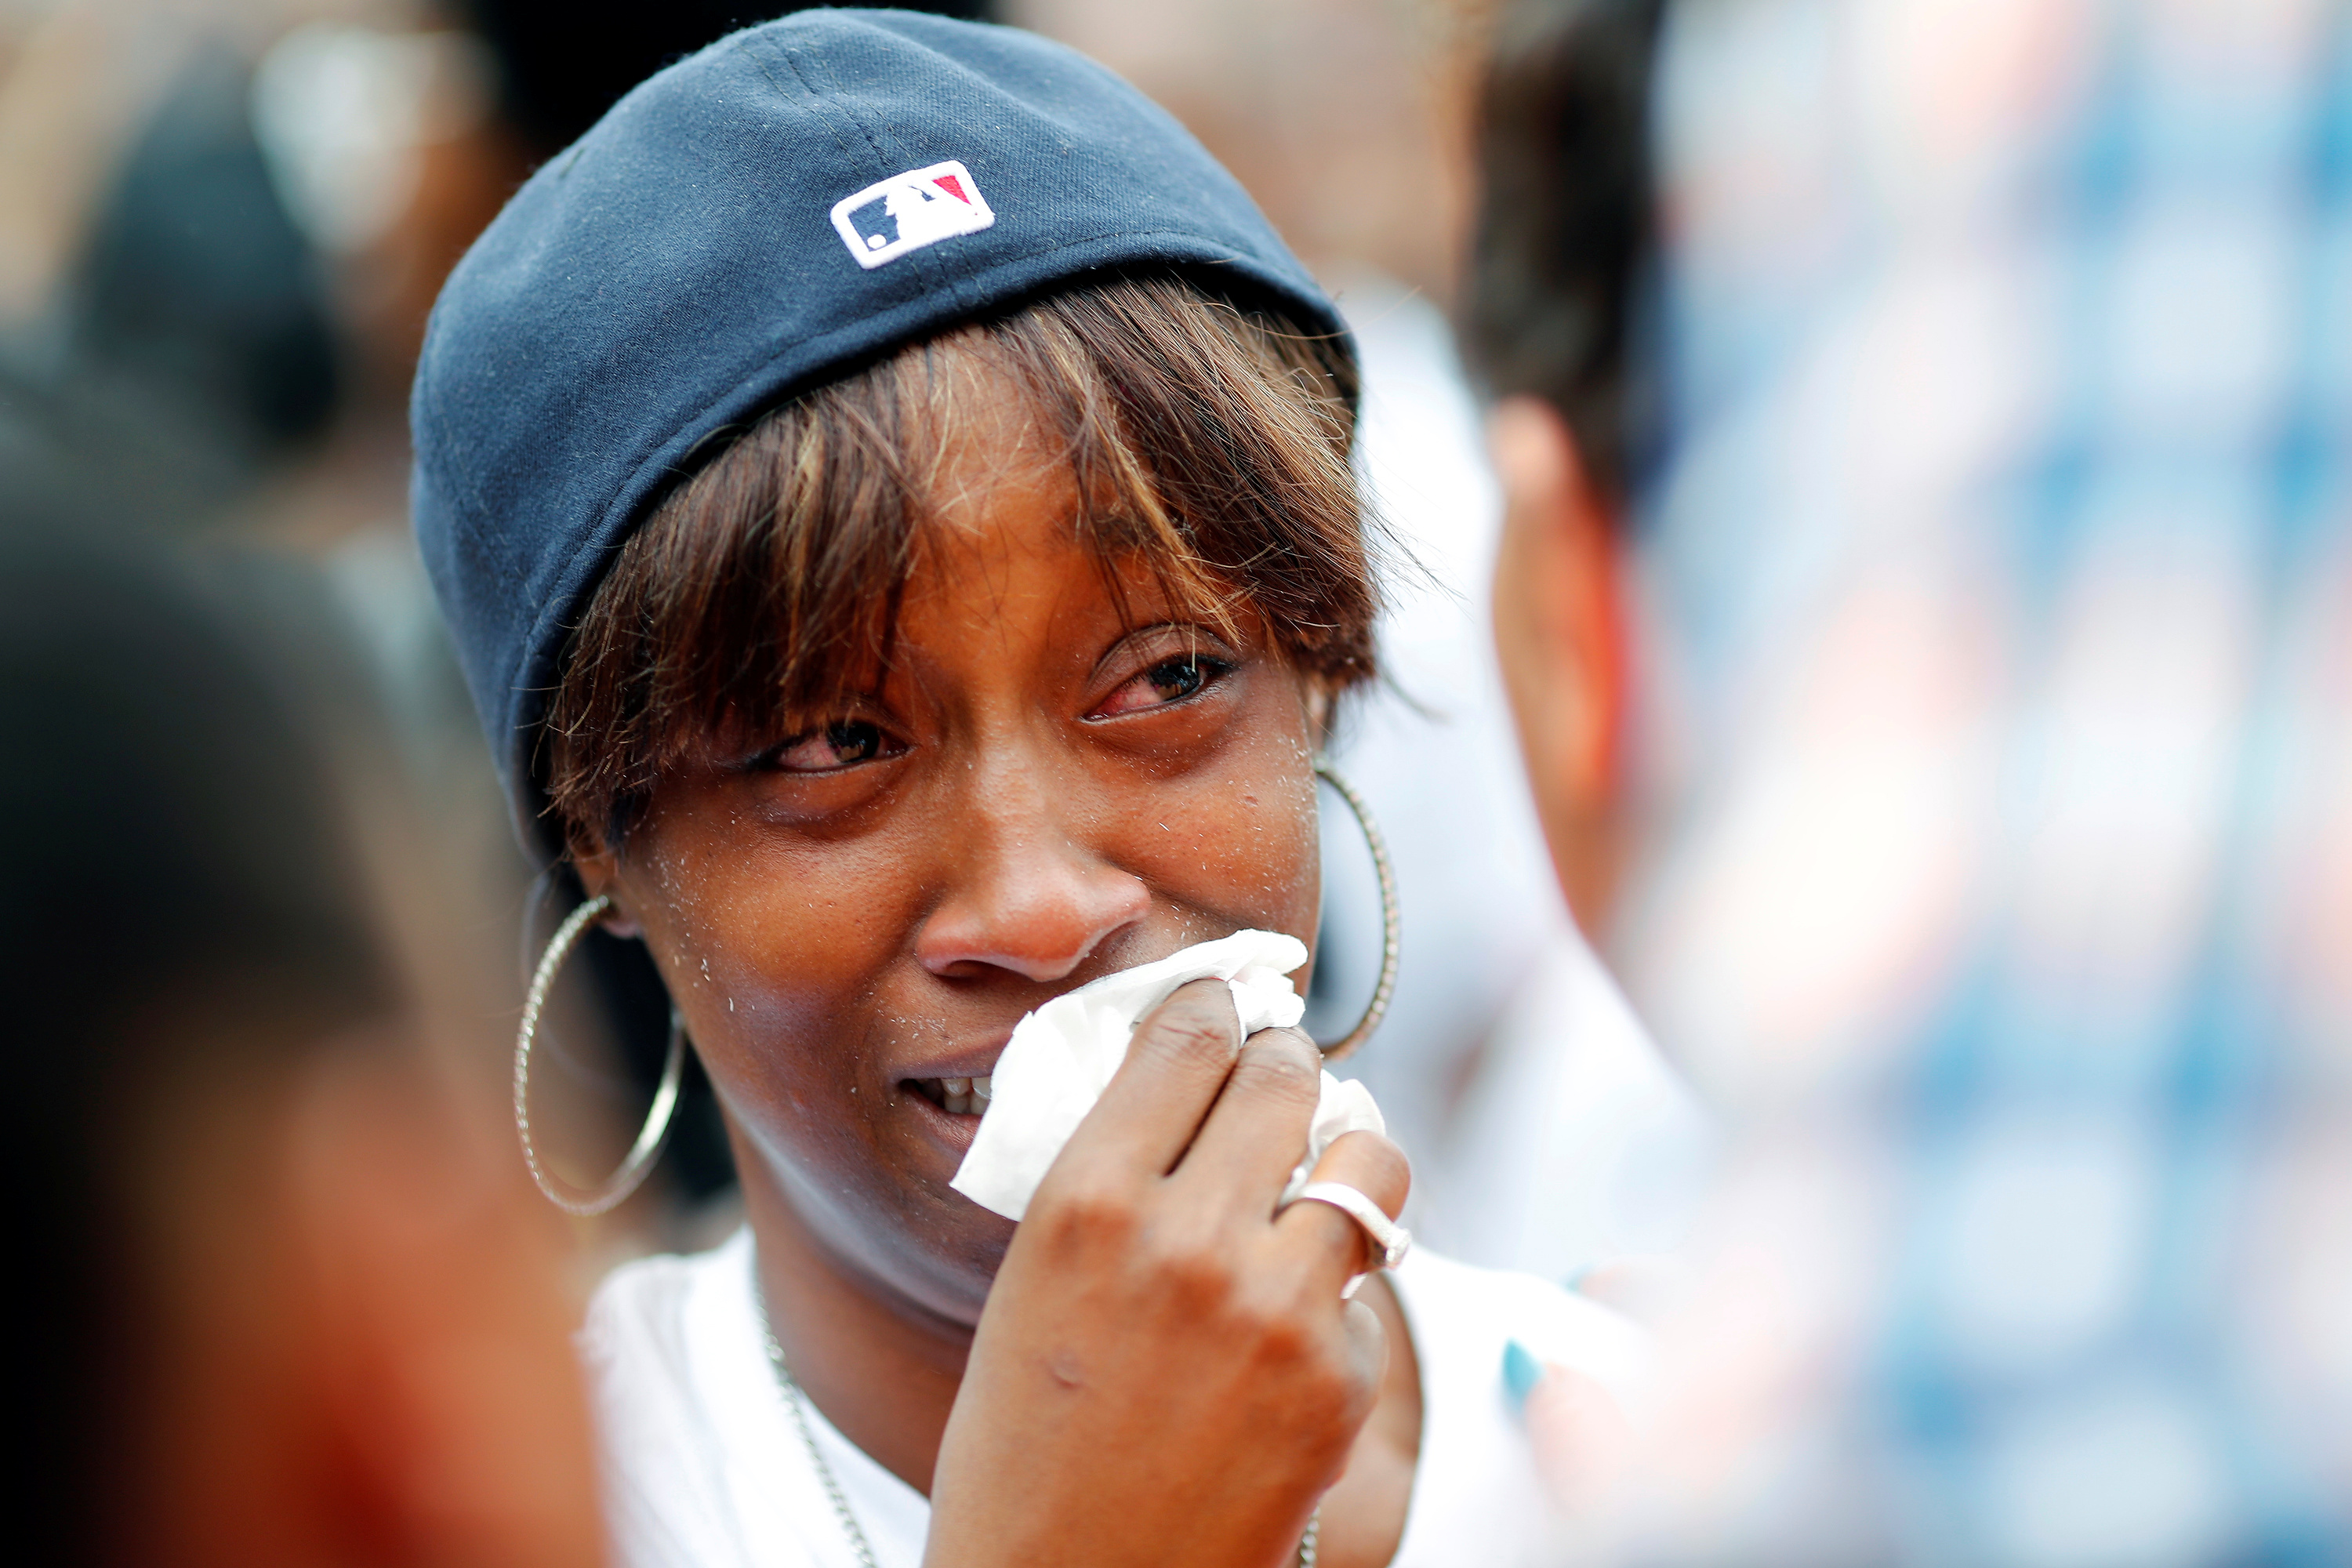 Diamond Reynolds, girlfriend of Philando Castile gets a hug as people gather to protest the fatal shooting of by Minneapolis area police during a traffic stop on Wednesday, in St. Paul, Minnesota, July 7, 2016.